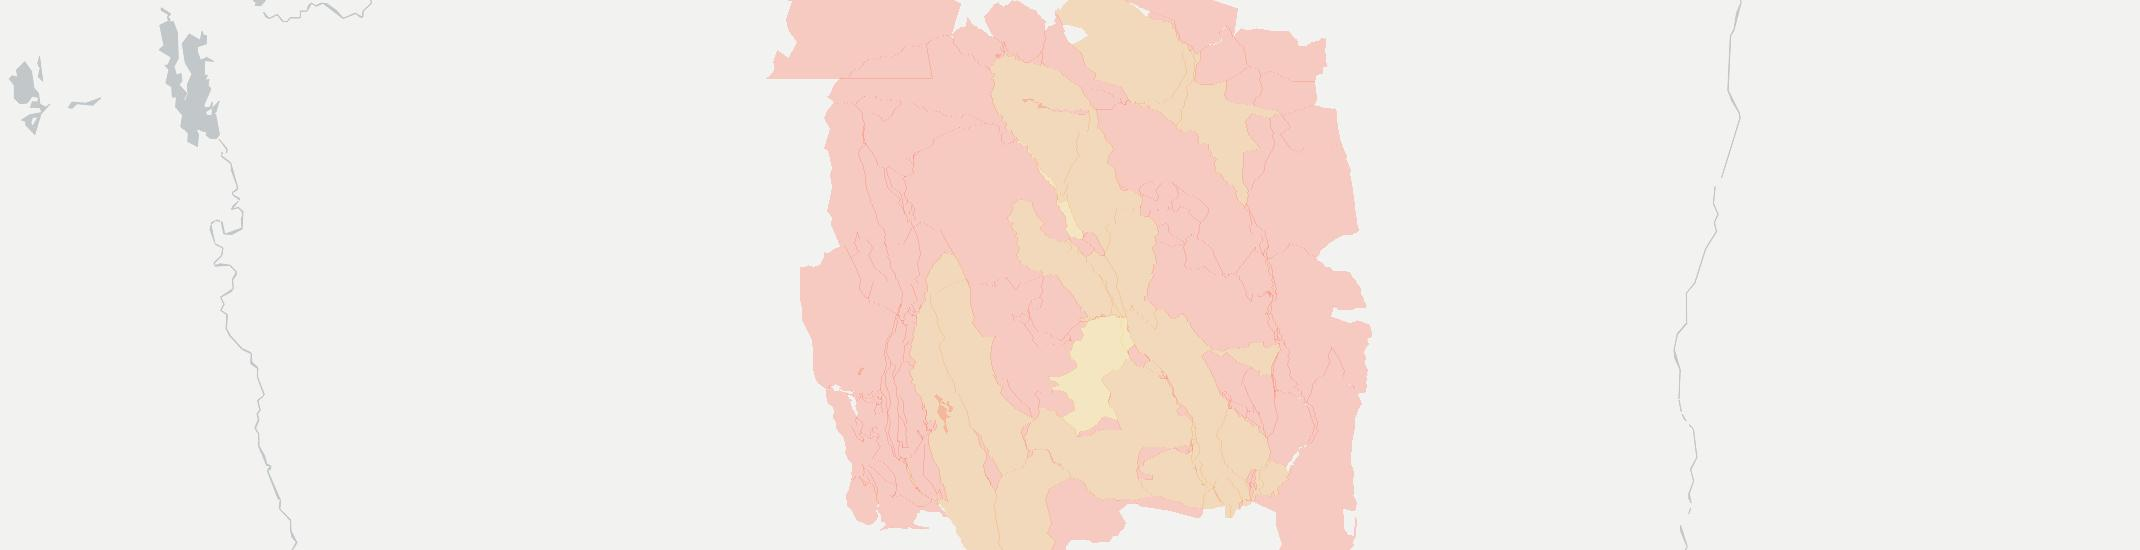 Vallecitos Internet Competition Map. Click for interactive map.